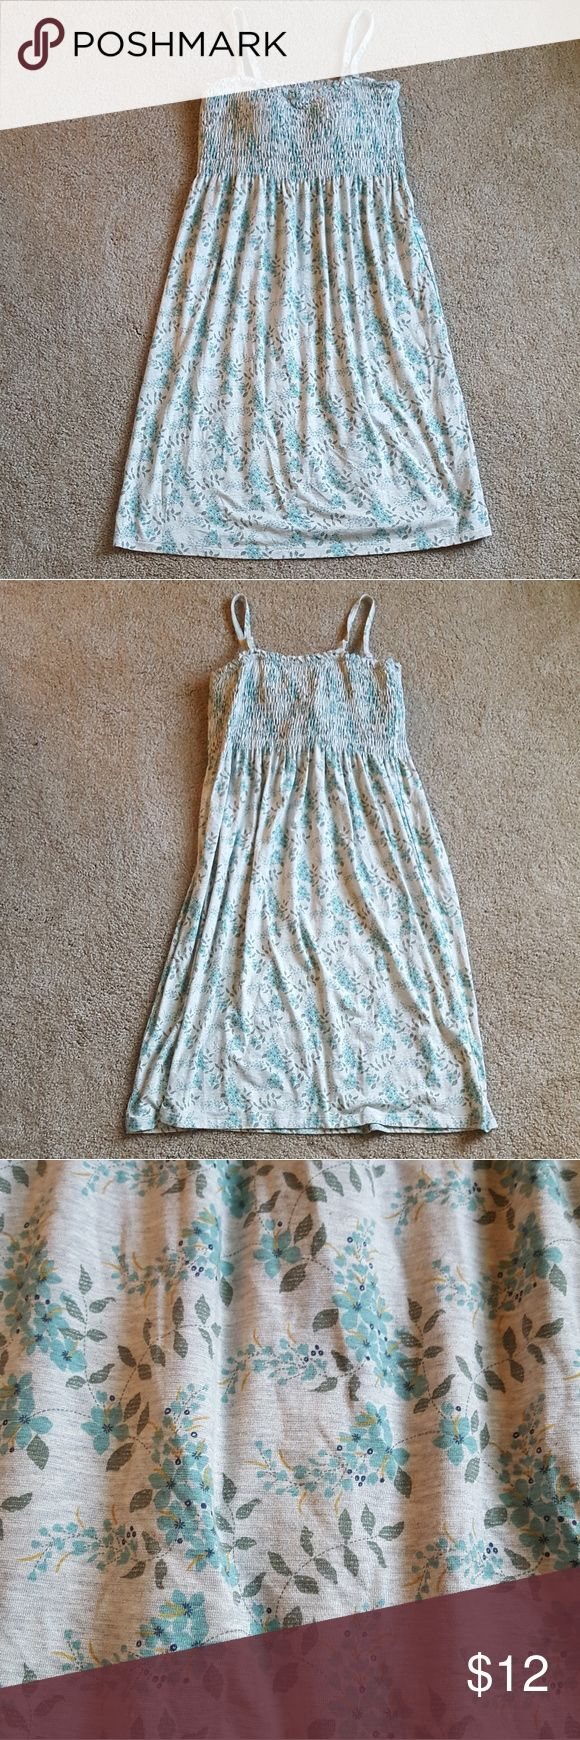 Floral Spaghetti Strap Sundress Cute floral dress with adjustable spaghetti straps. Grey with light blue flowers. Scrunched top portion. Built in padded bra. Stretchy fabric. Uniqlo Dresses Midi